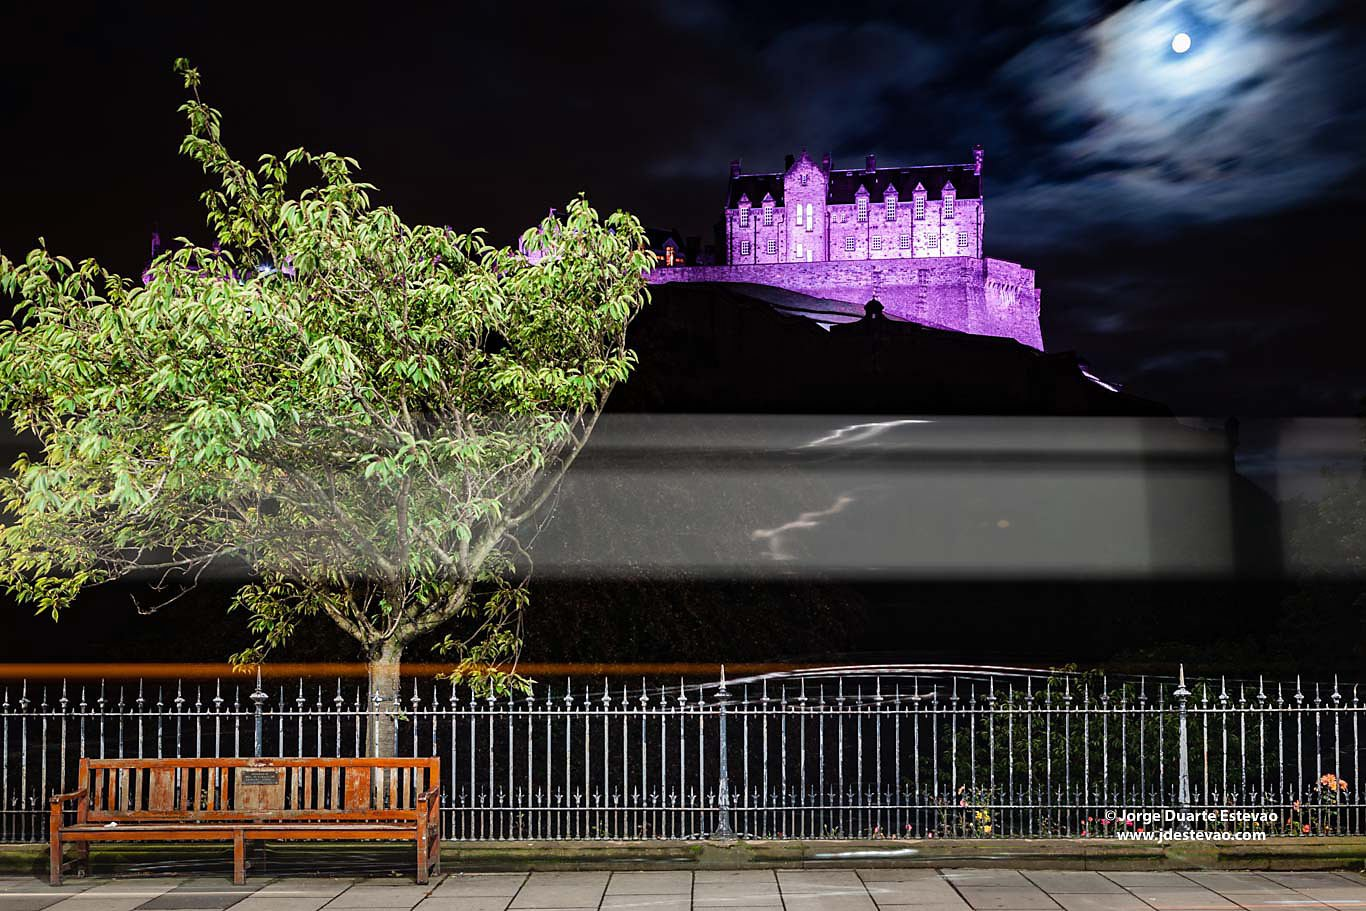 Full moon over purple lit Edinburgh Castle night tree bench edinburgh street scotland